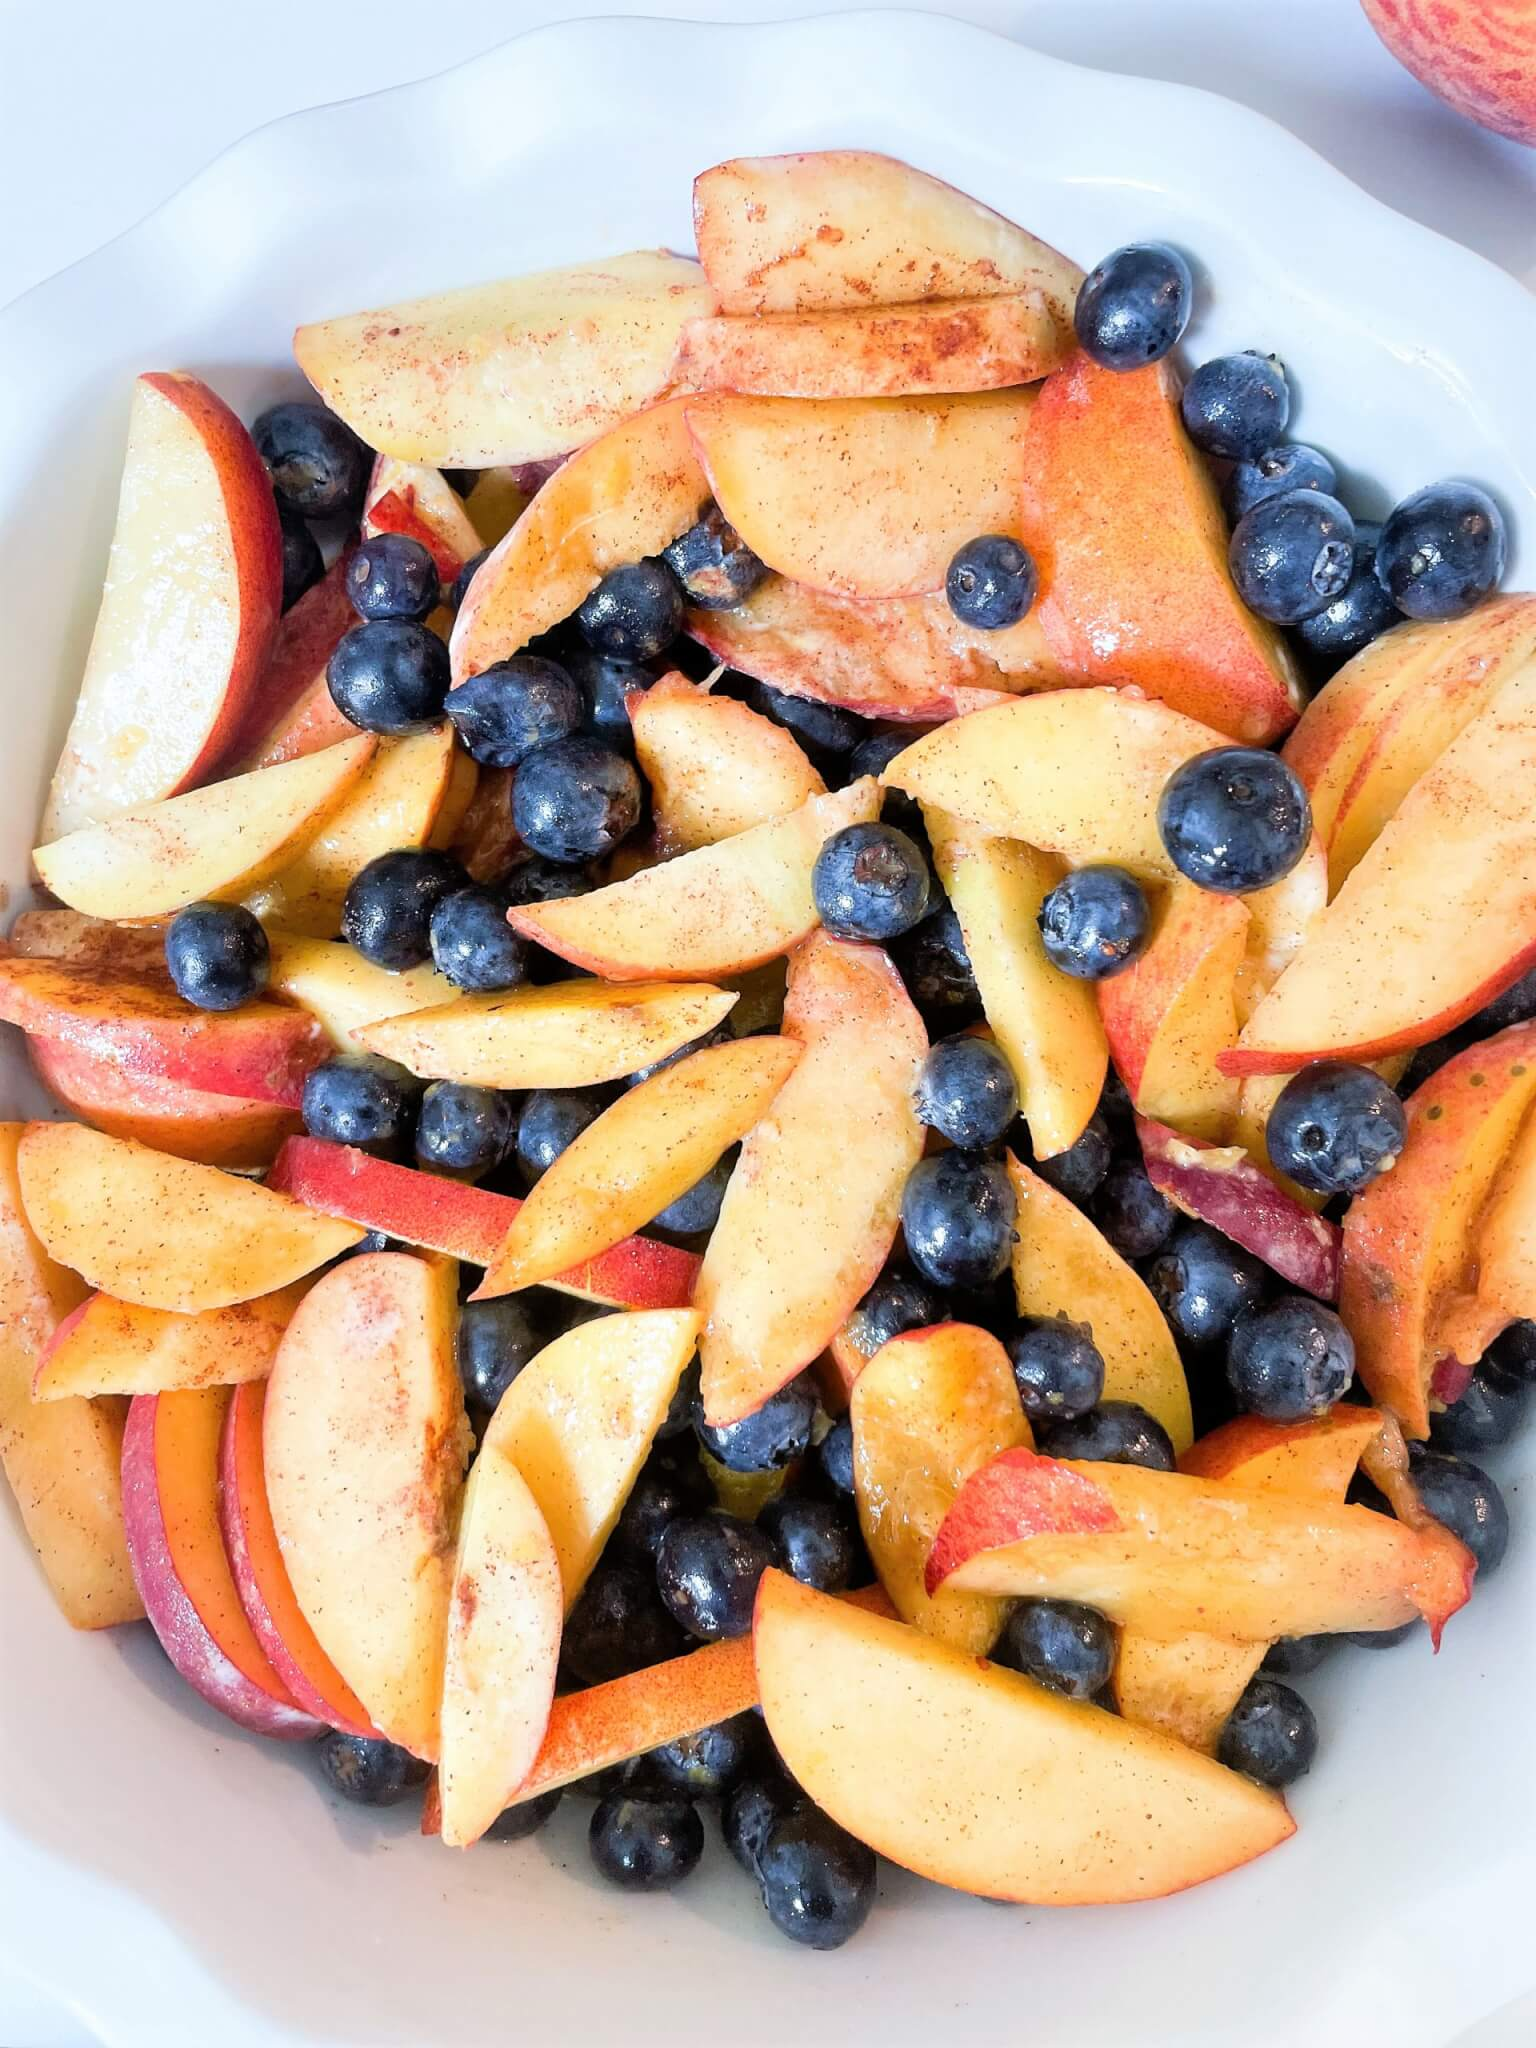 blueberry and peach filling